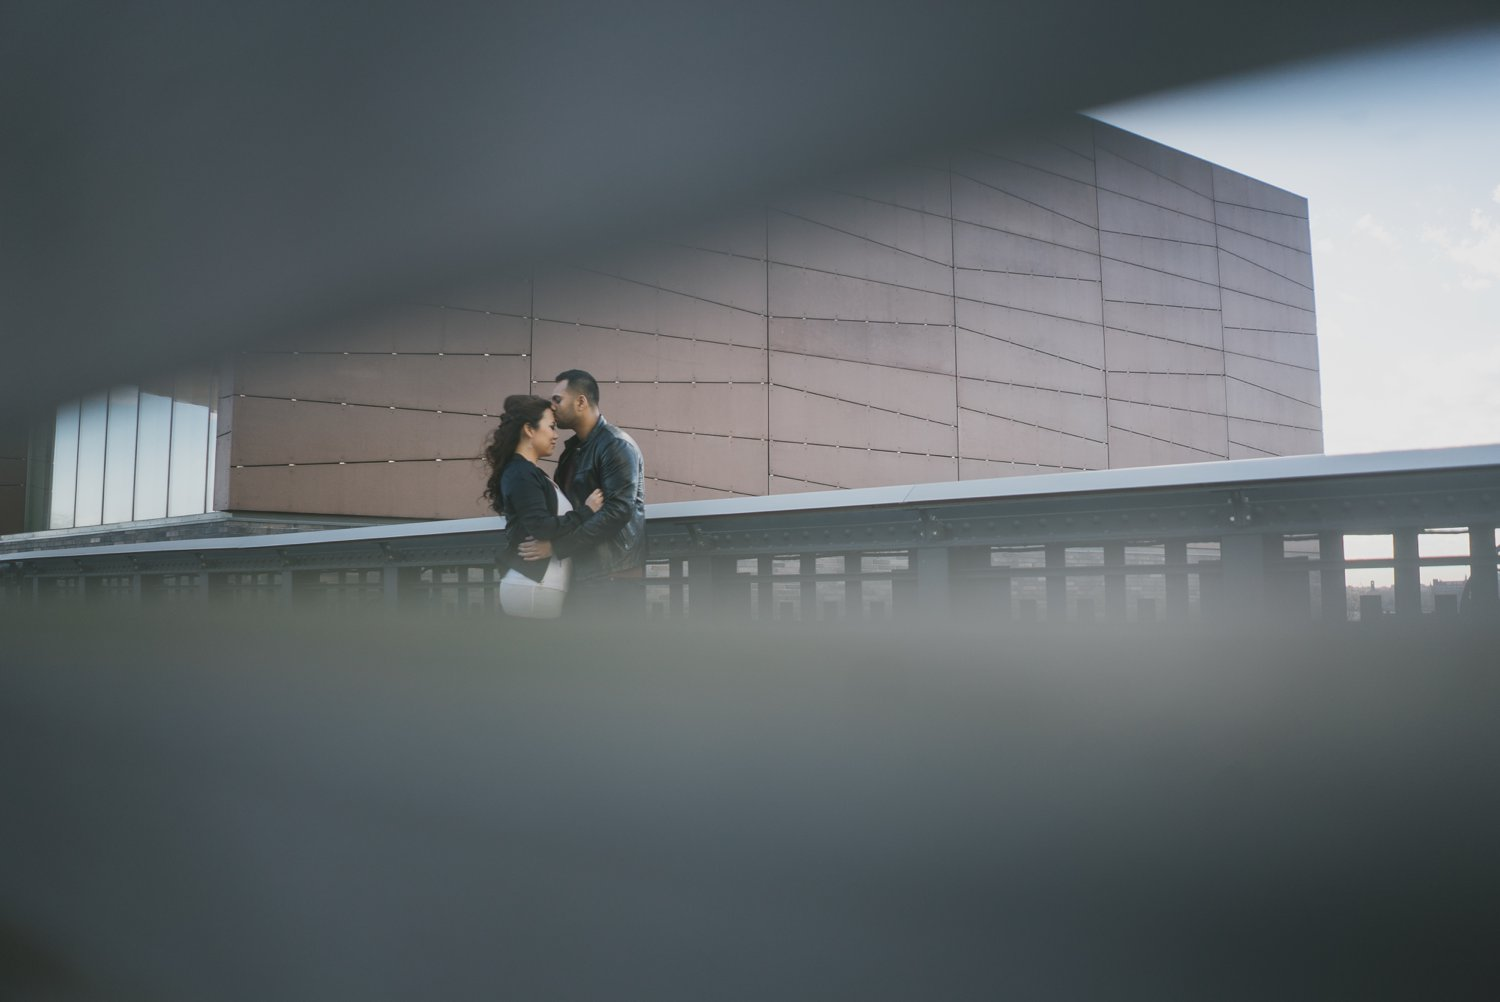 55NYC-NJ-ENGAGEMENT-PHOTOGRAPHY-BY-INTOTHESTORY-MOO-JAE.JPG